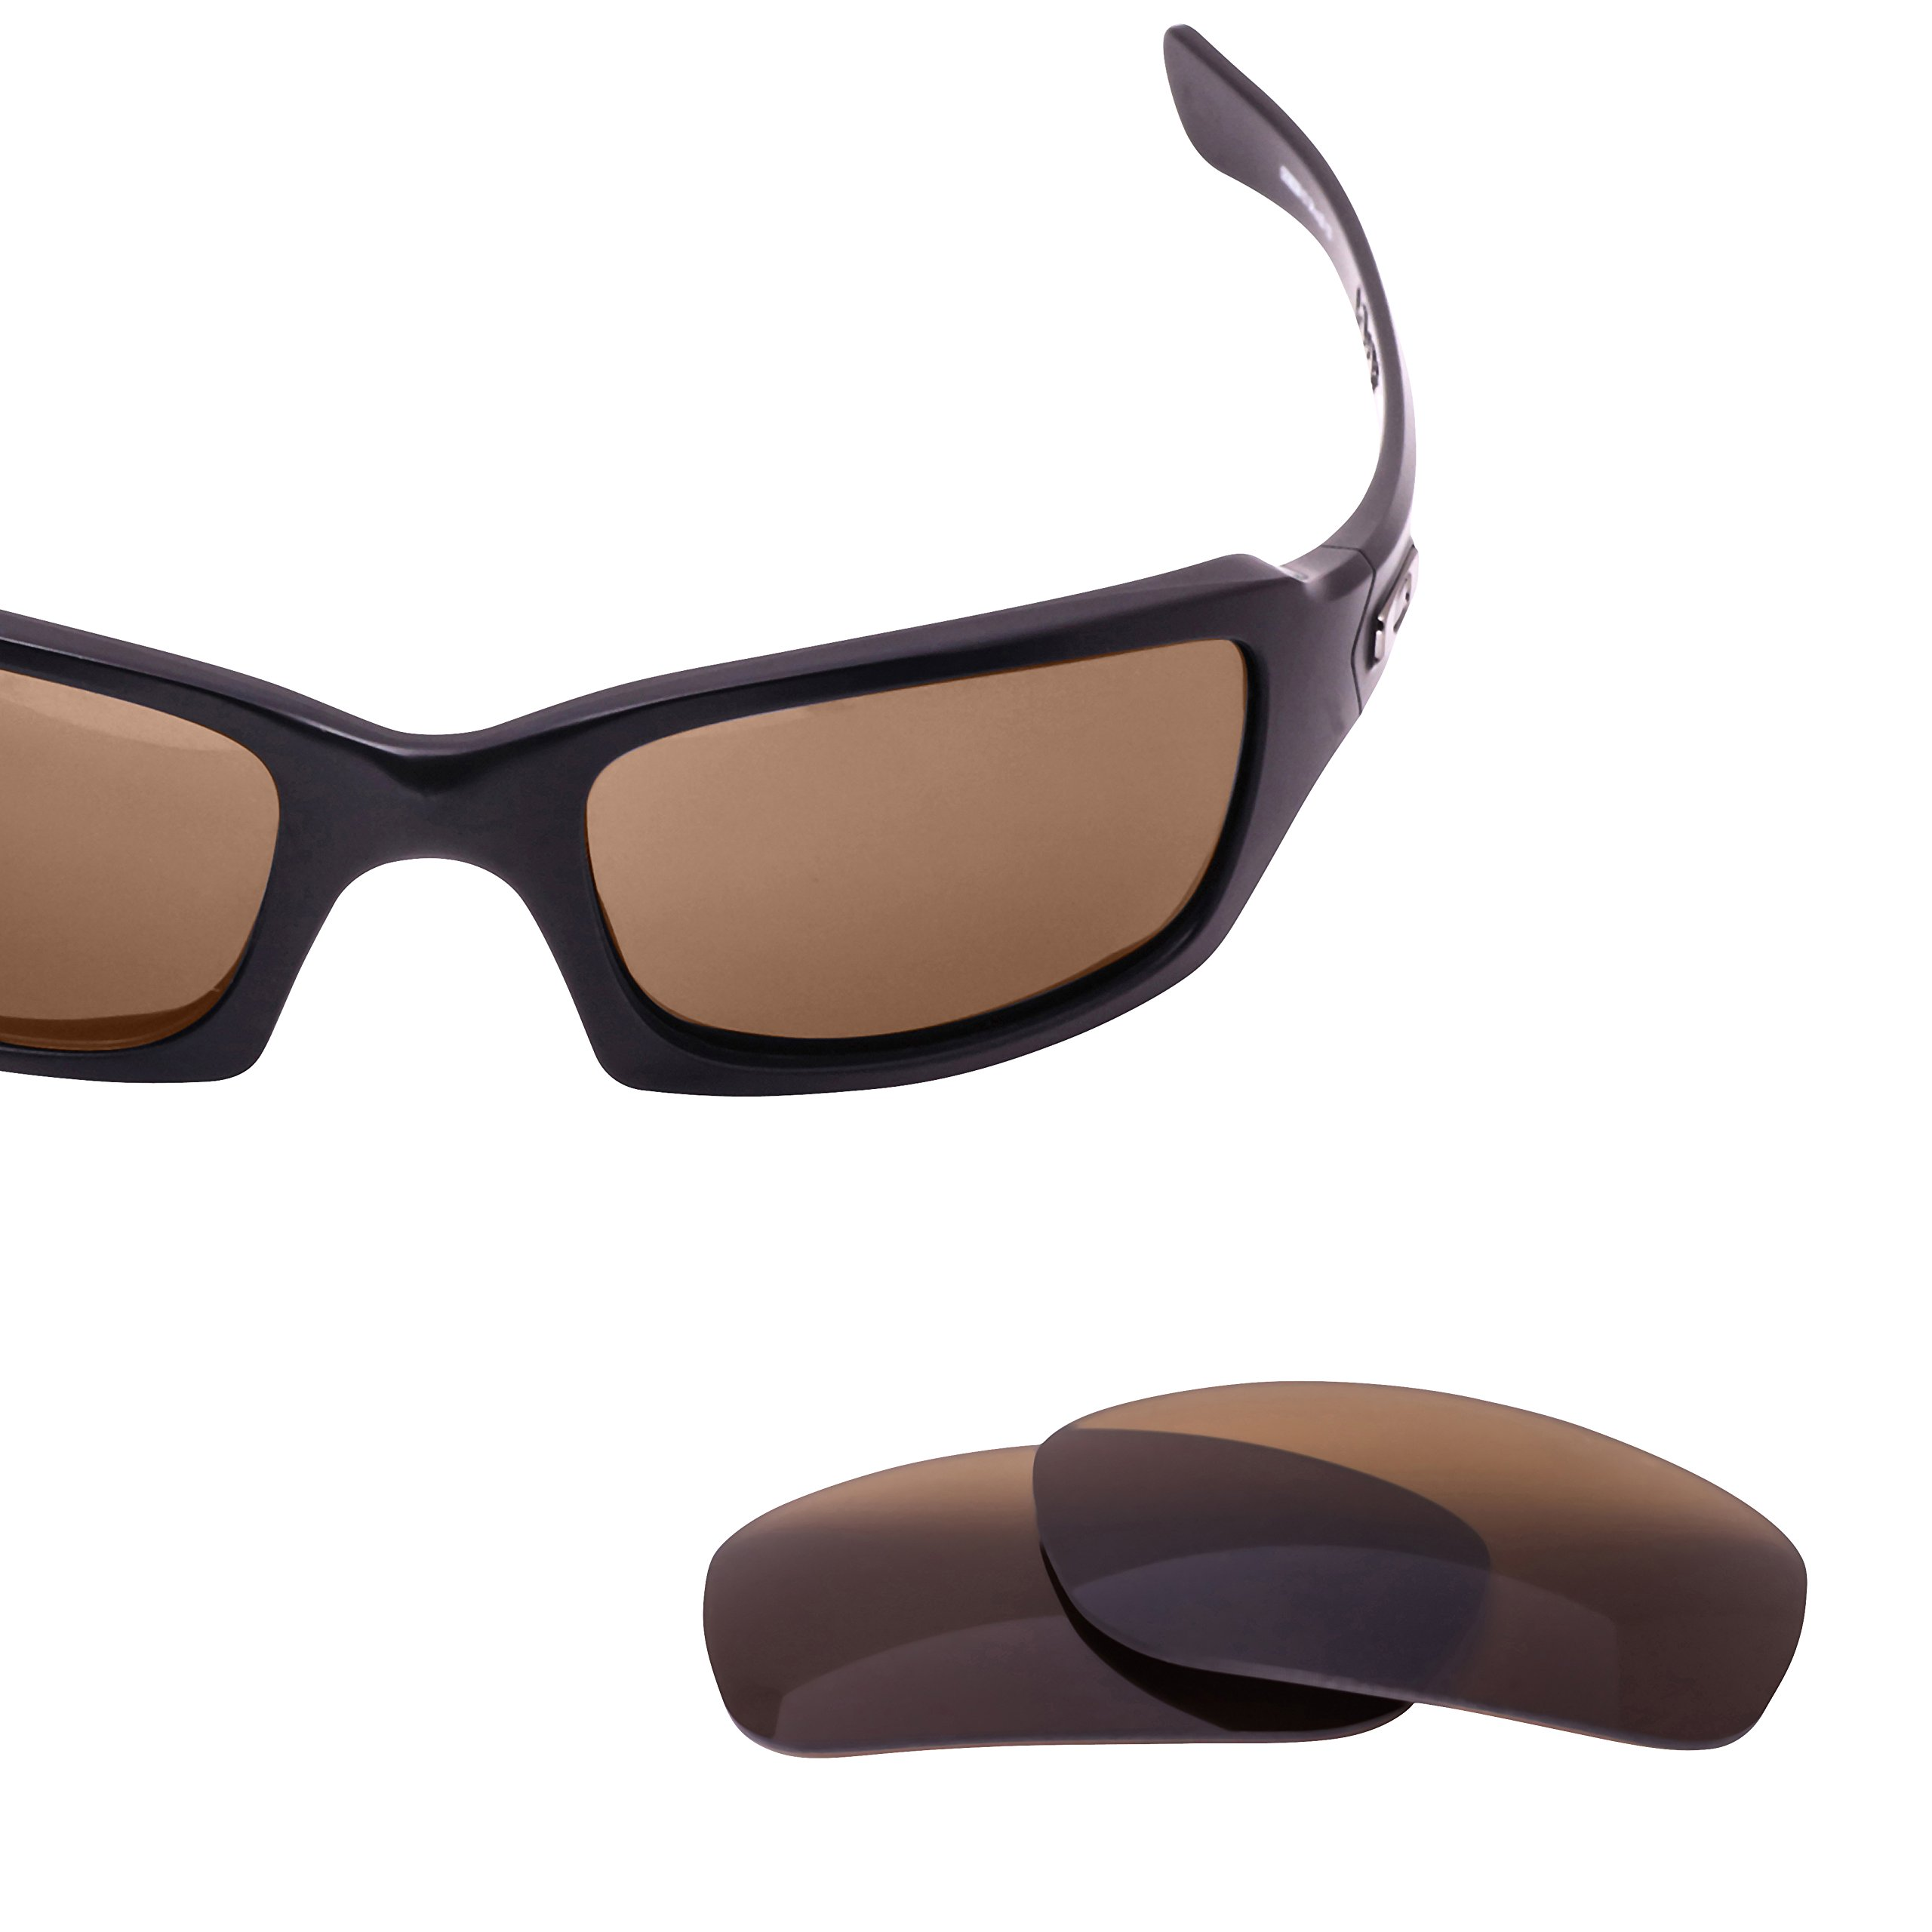 LenzFlip Replacement Lenses for Oakley FIVES Squared Sunglass Frame - Brown Polarized Lenses